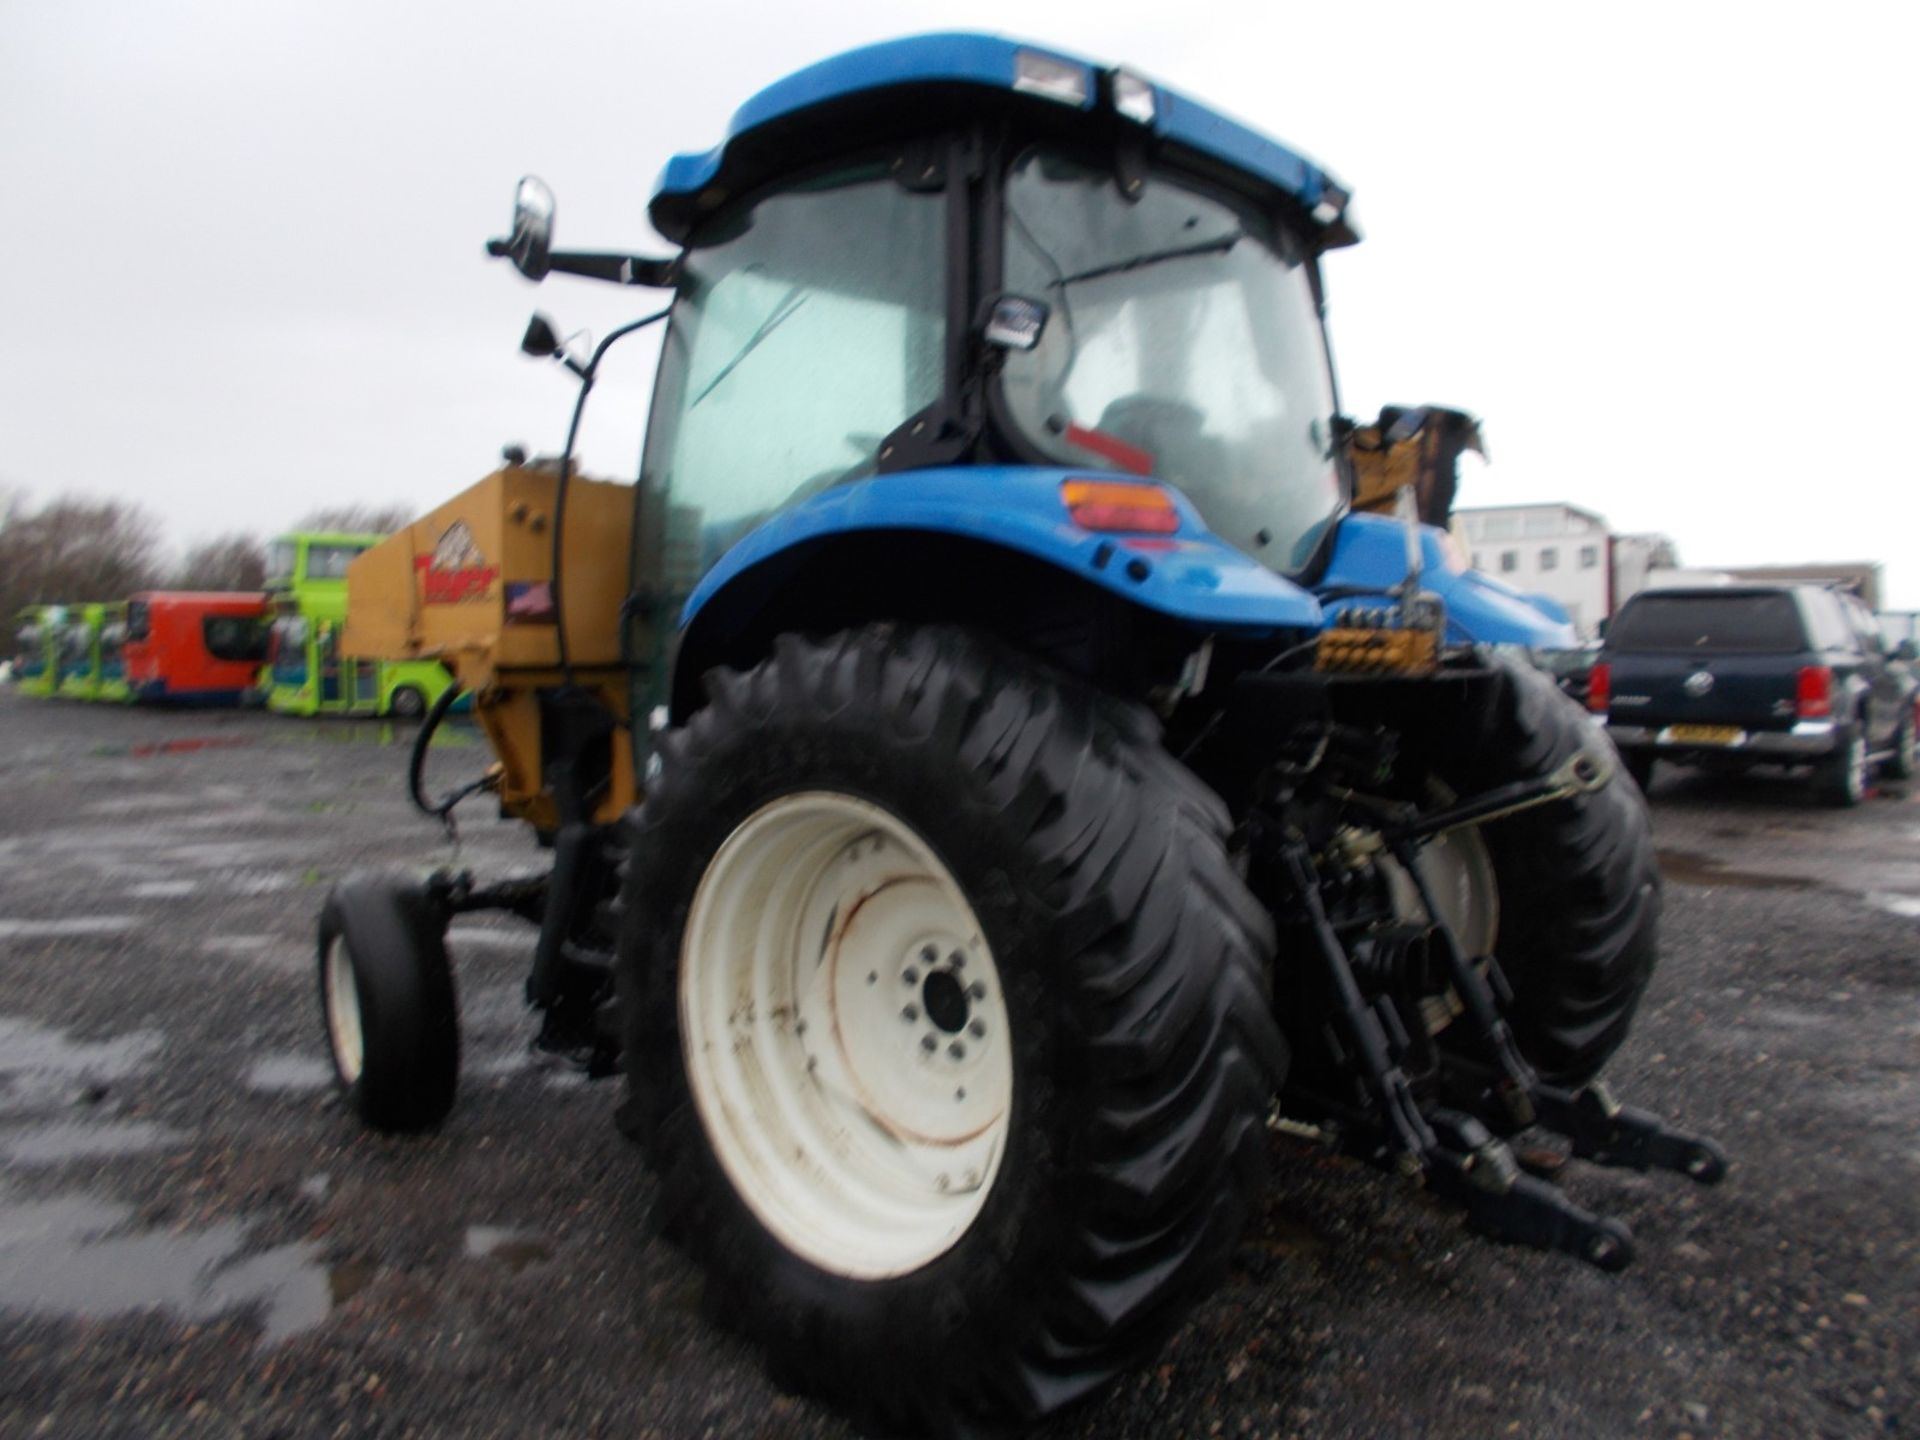 2003 NEW HOLLAND TS100A TRACTOR WITH MOWER ATTACHMENT, 4.5 LITRE 100HP TURBO DIESEL *PLUS VAT* - Image 6 of 24